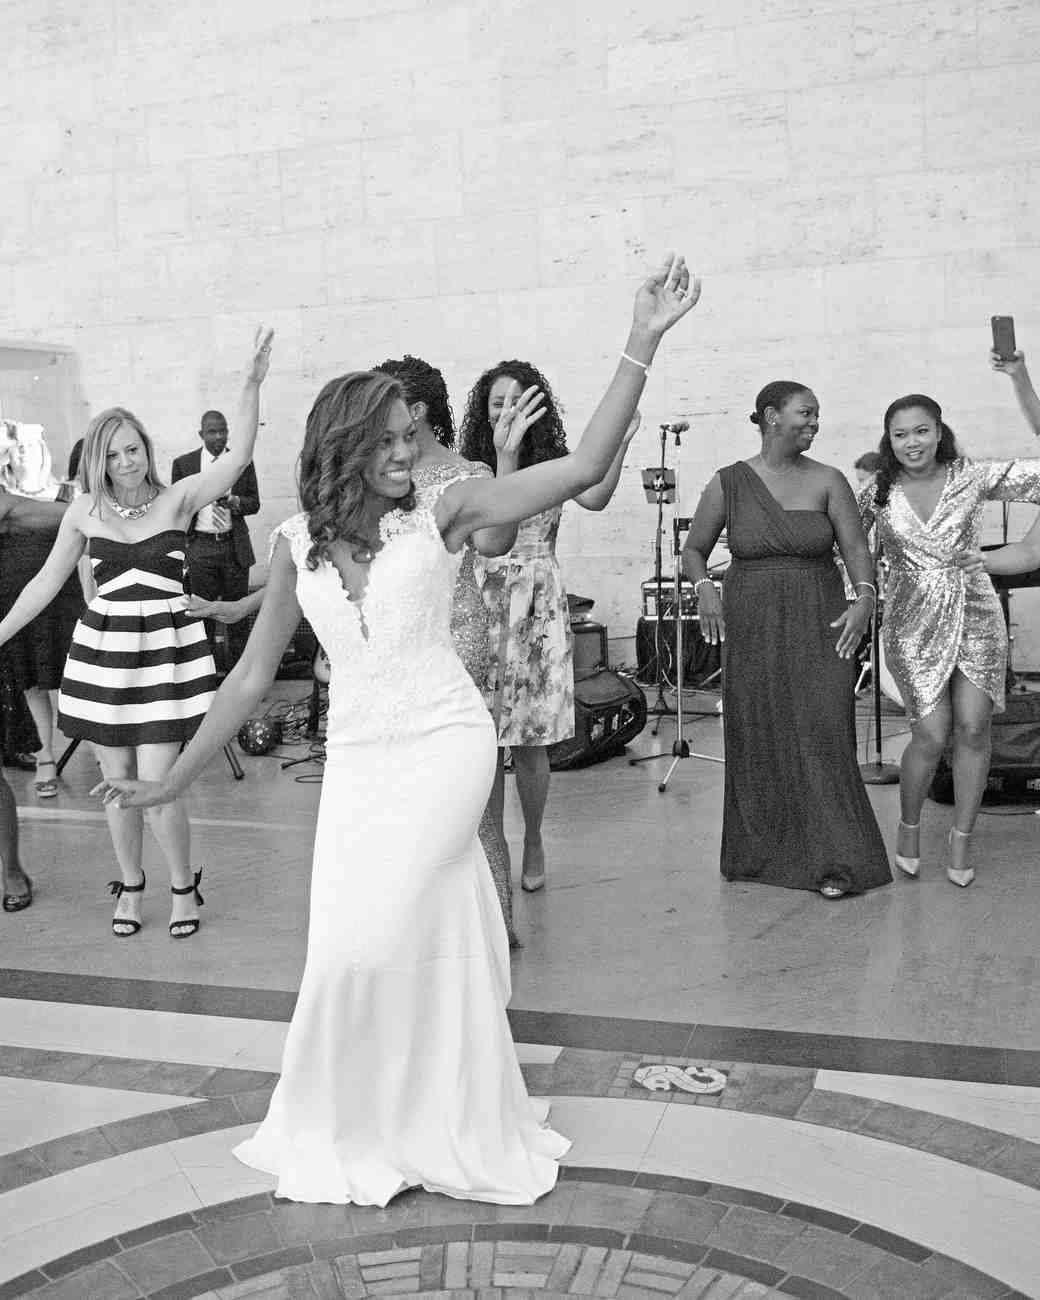 A Traditional Wedding In Detroit Mi: A Detroit Art Museum Wedding With Scottish And Samoan